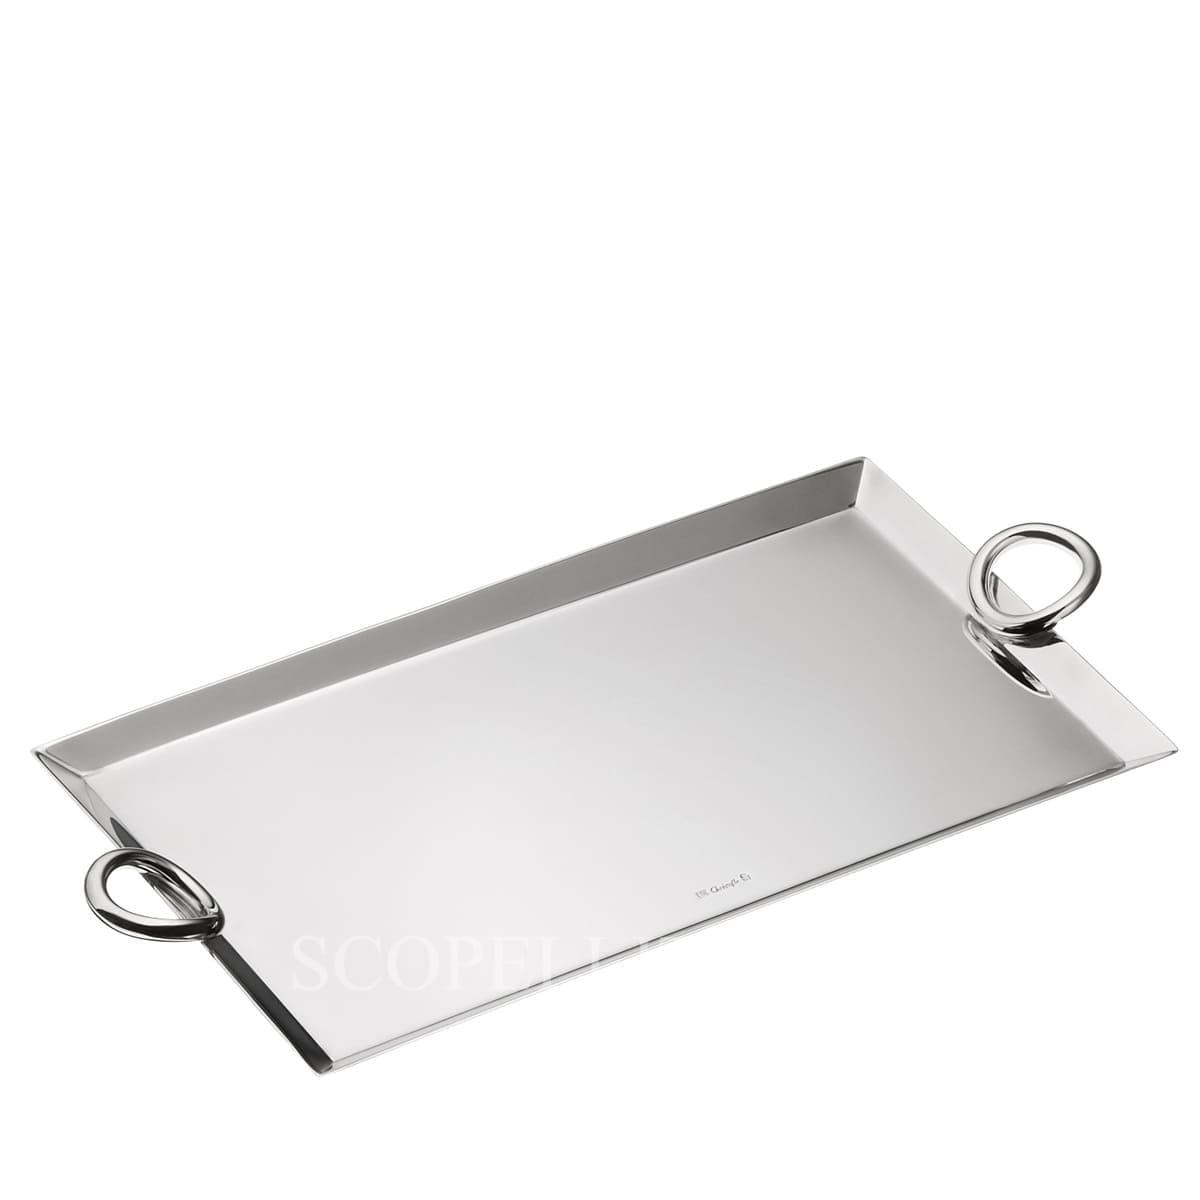 Christofle Vertigo Silver Plated Mail Tray 25 x 14 cm